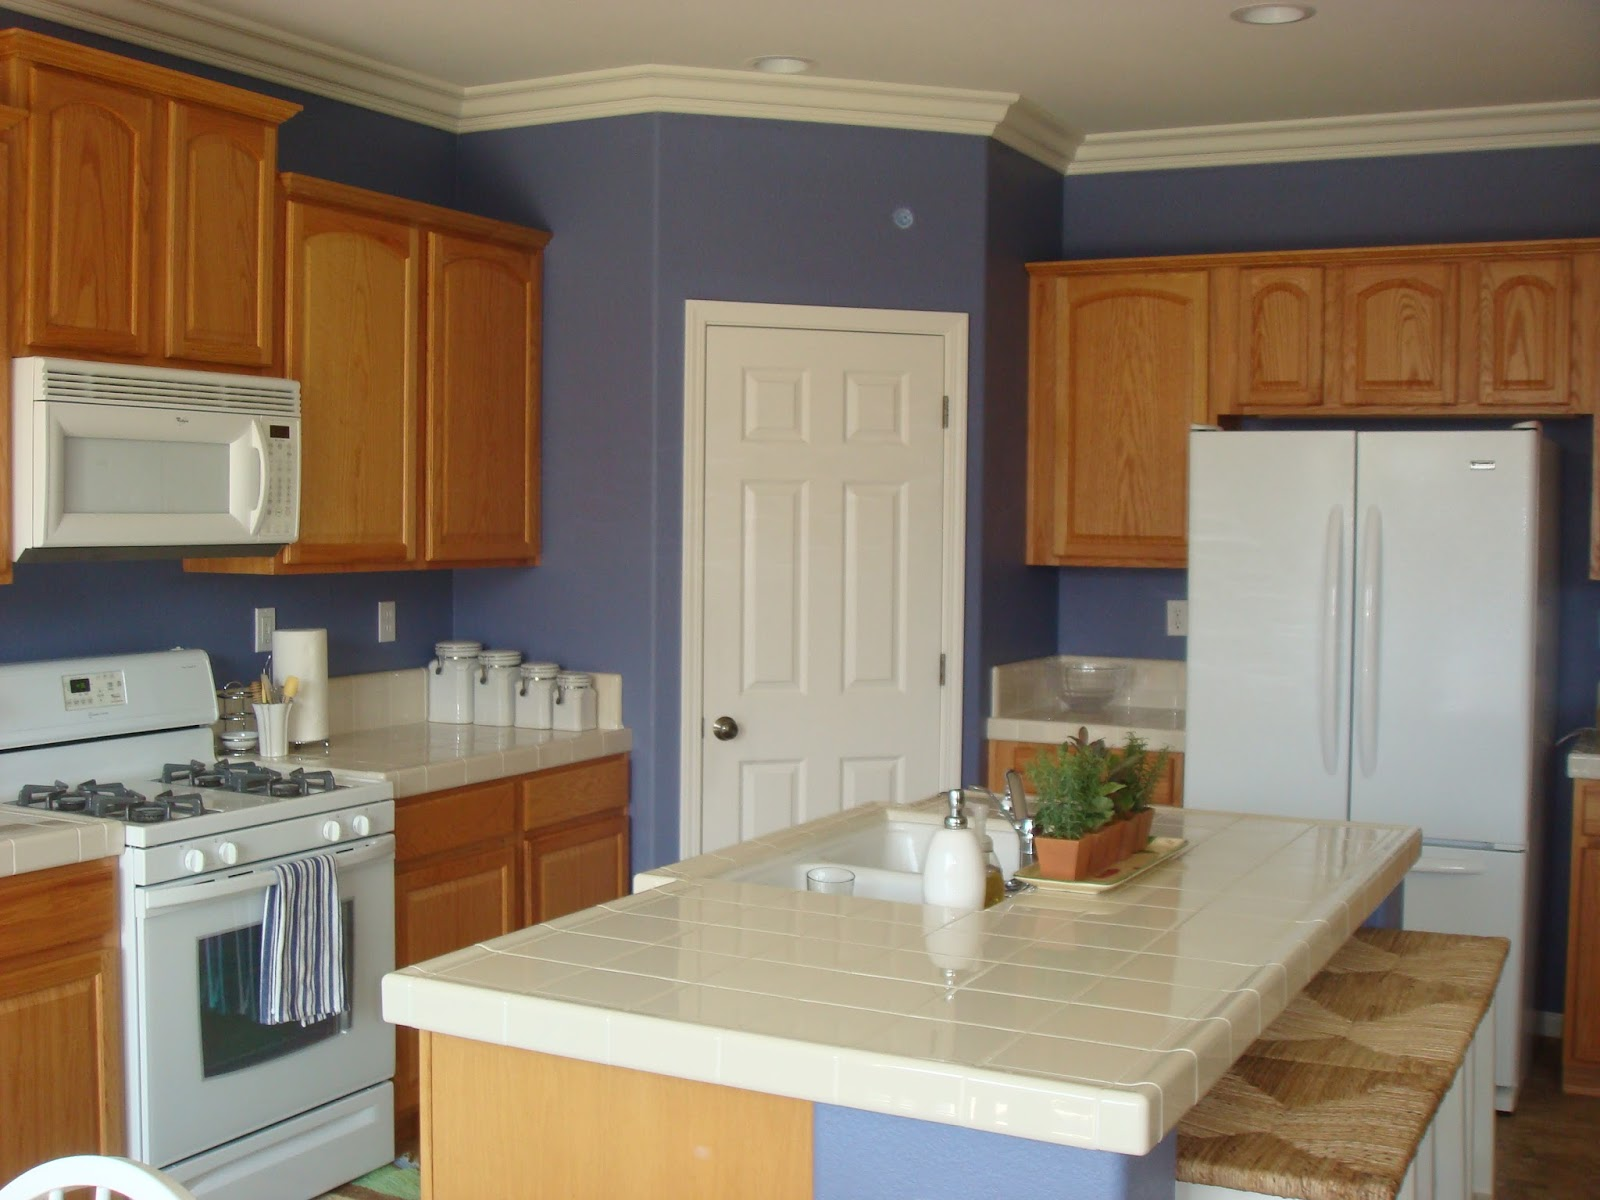 Particularly Practically Pretty: The kitchen remodel ...